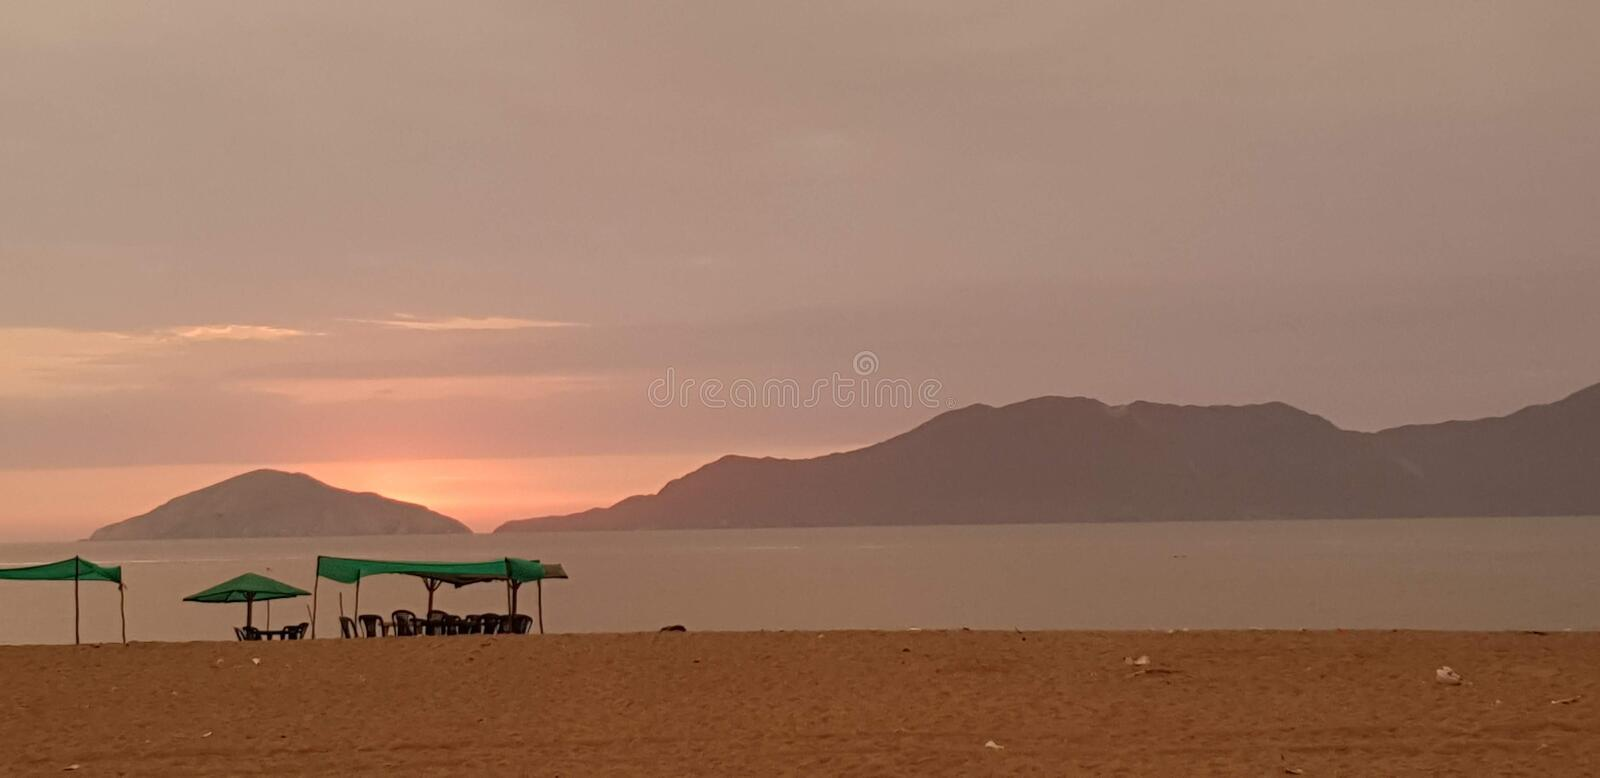 Sunset and tent in Besique Beach 3. Tent and food table in Sunset solitaire beach - Besique, Peru. Some mountains in the background royalty free stock photos